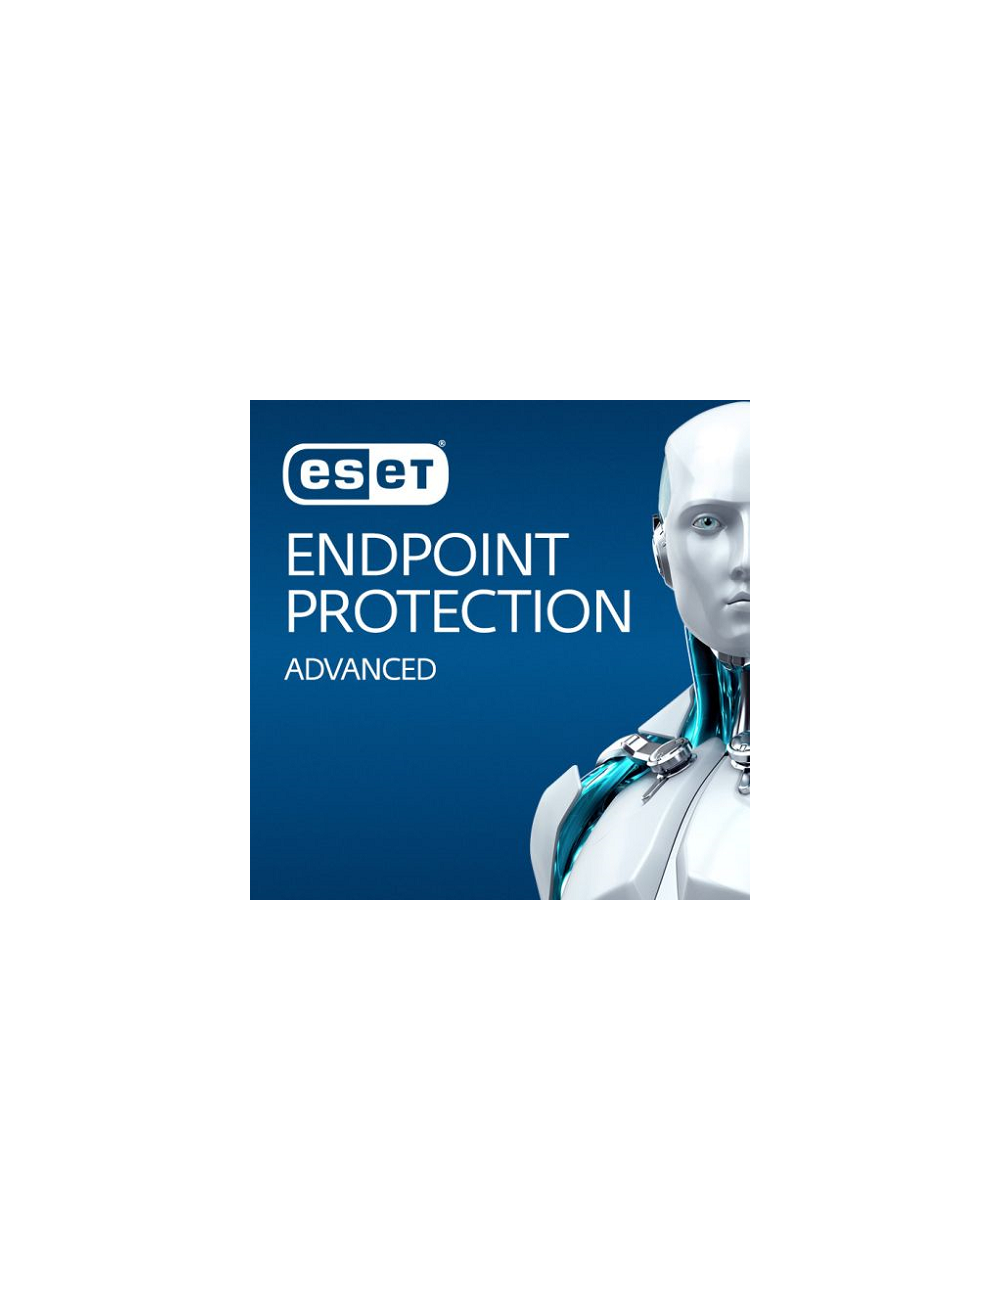 ESET Endpoint Protection Advanced (26-49 postes) -  Licence 1 poste - 1 an